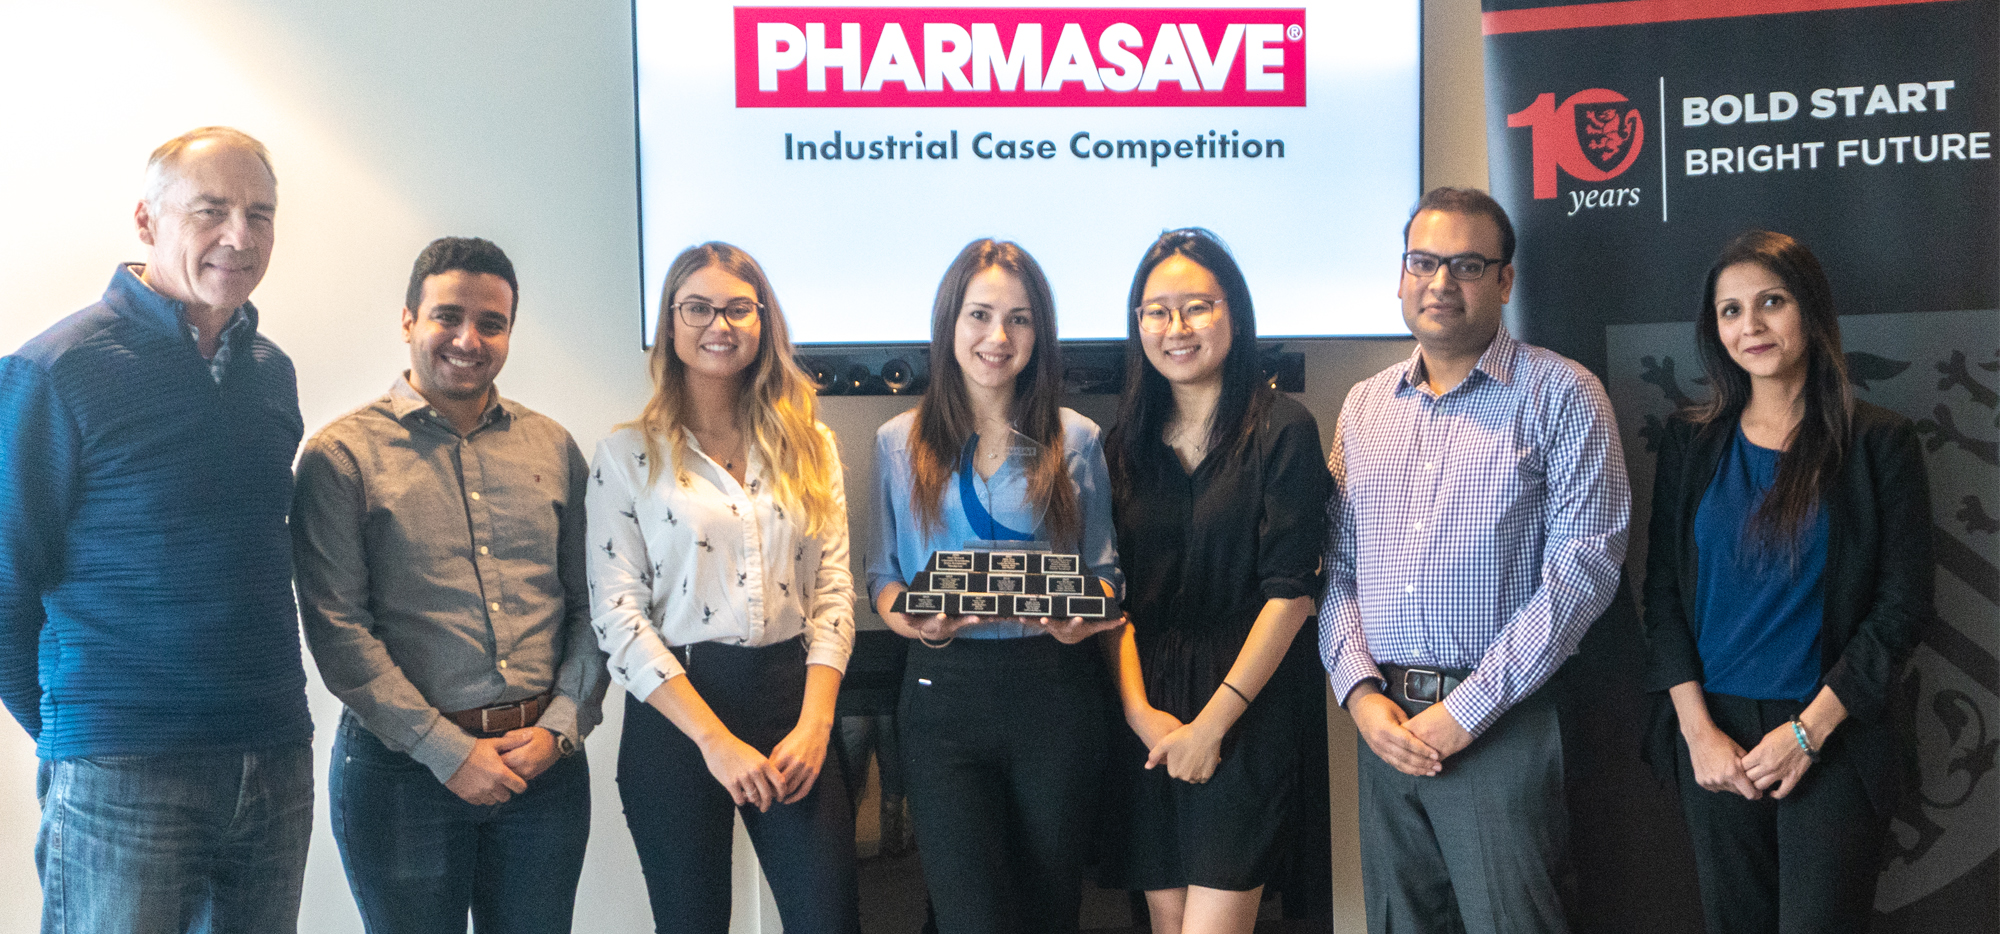 Winners of the Pharmasave Industrial Case Comeptition smiling with trophy, Dave Edwards and Jaspreet Dhaliwall.